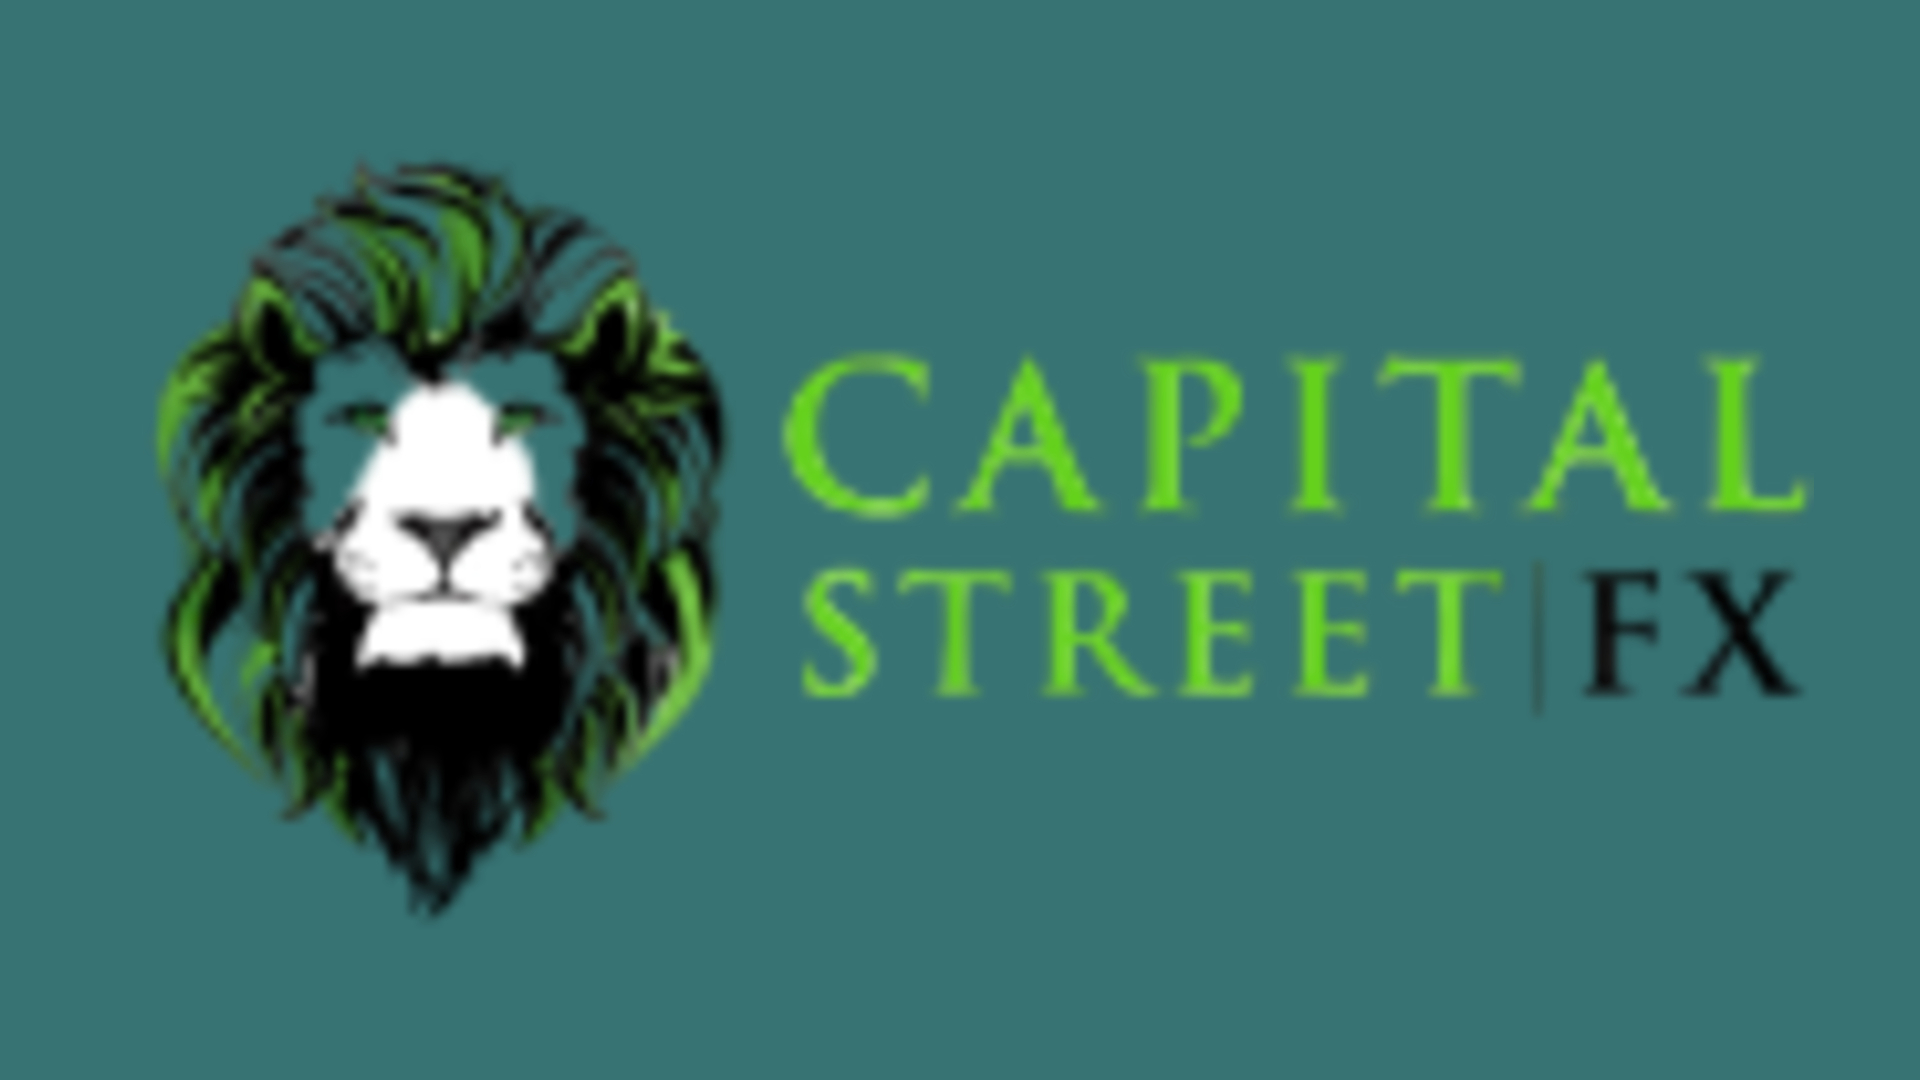 Capital Street FX Review – What you can look forward to